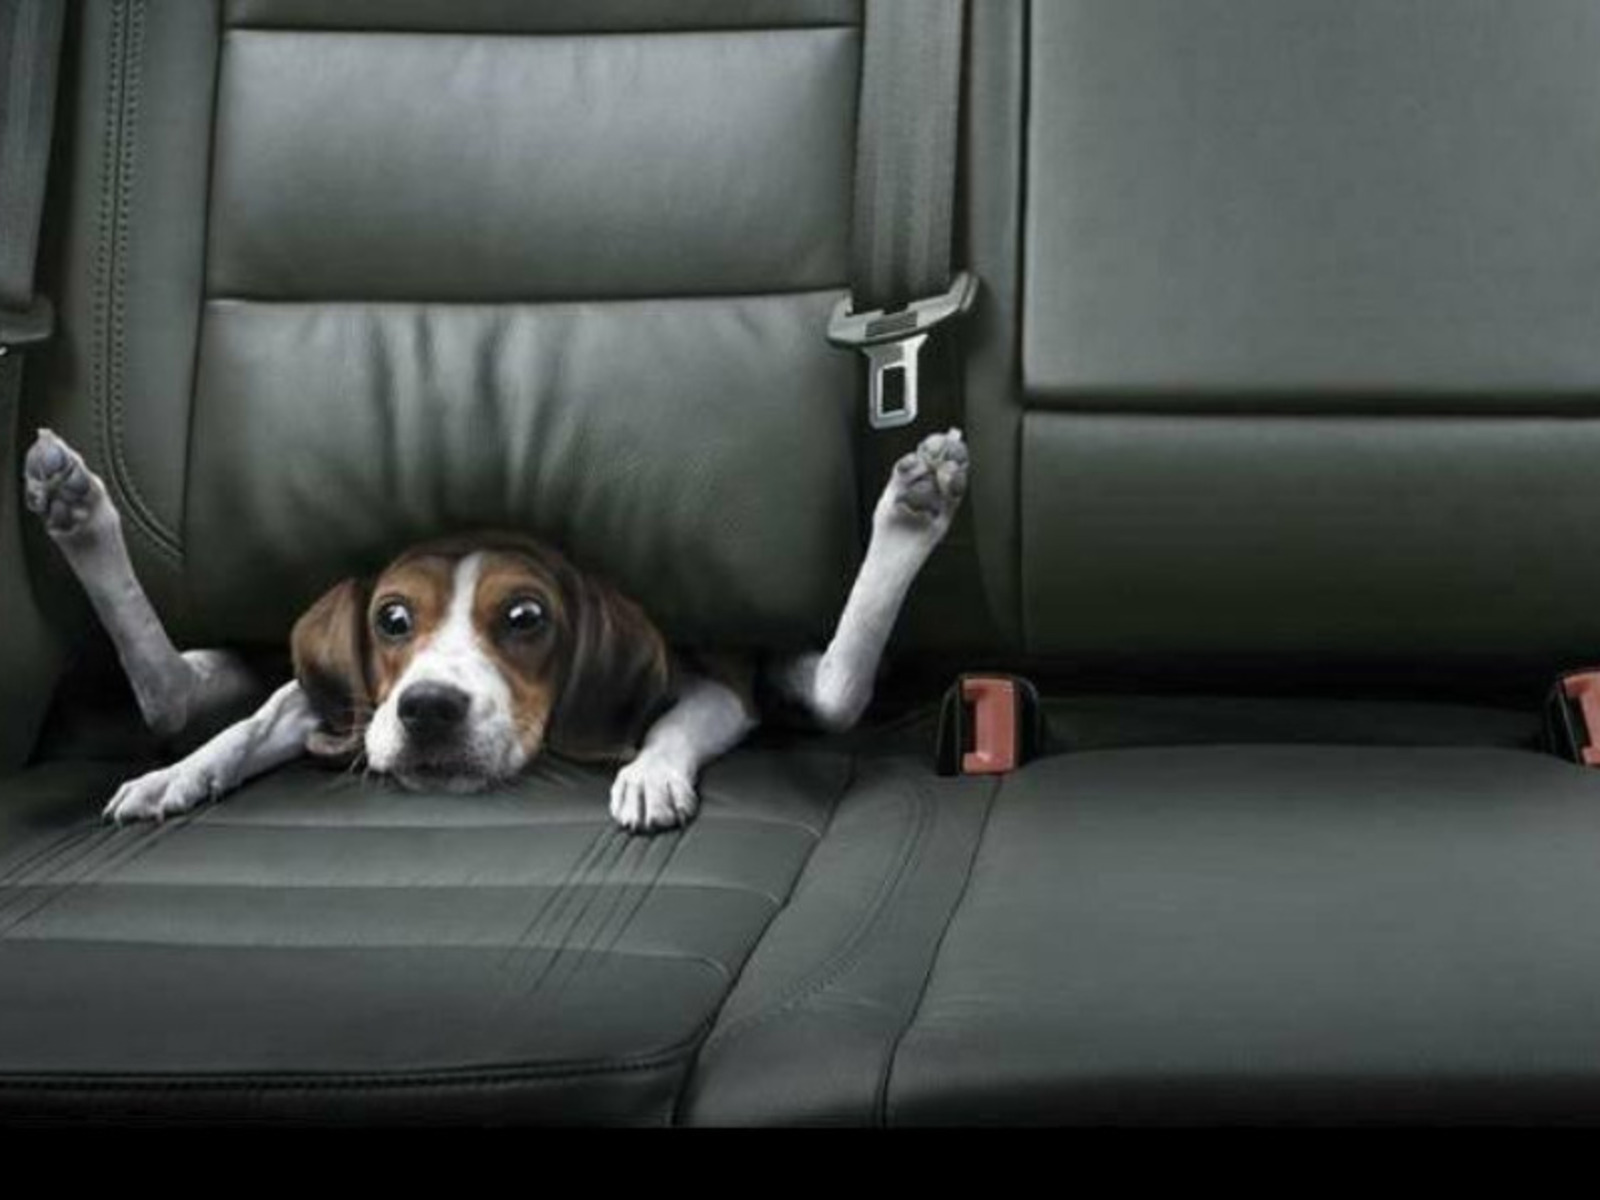 Funny wallpapers hd wallpapers funny dog wallpaper for Fun wallpaper for home